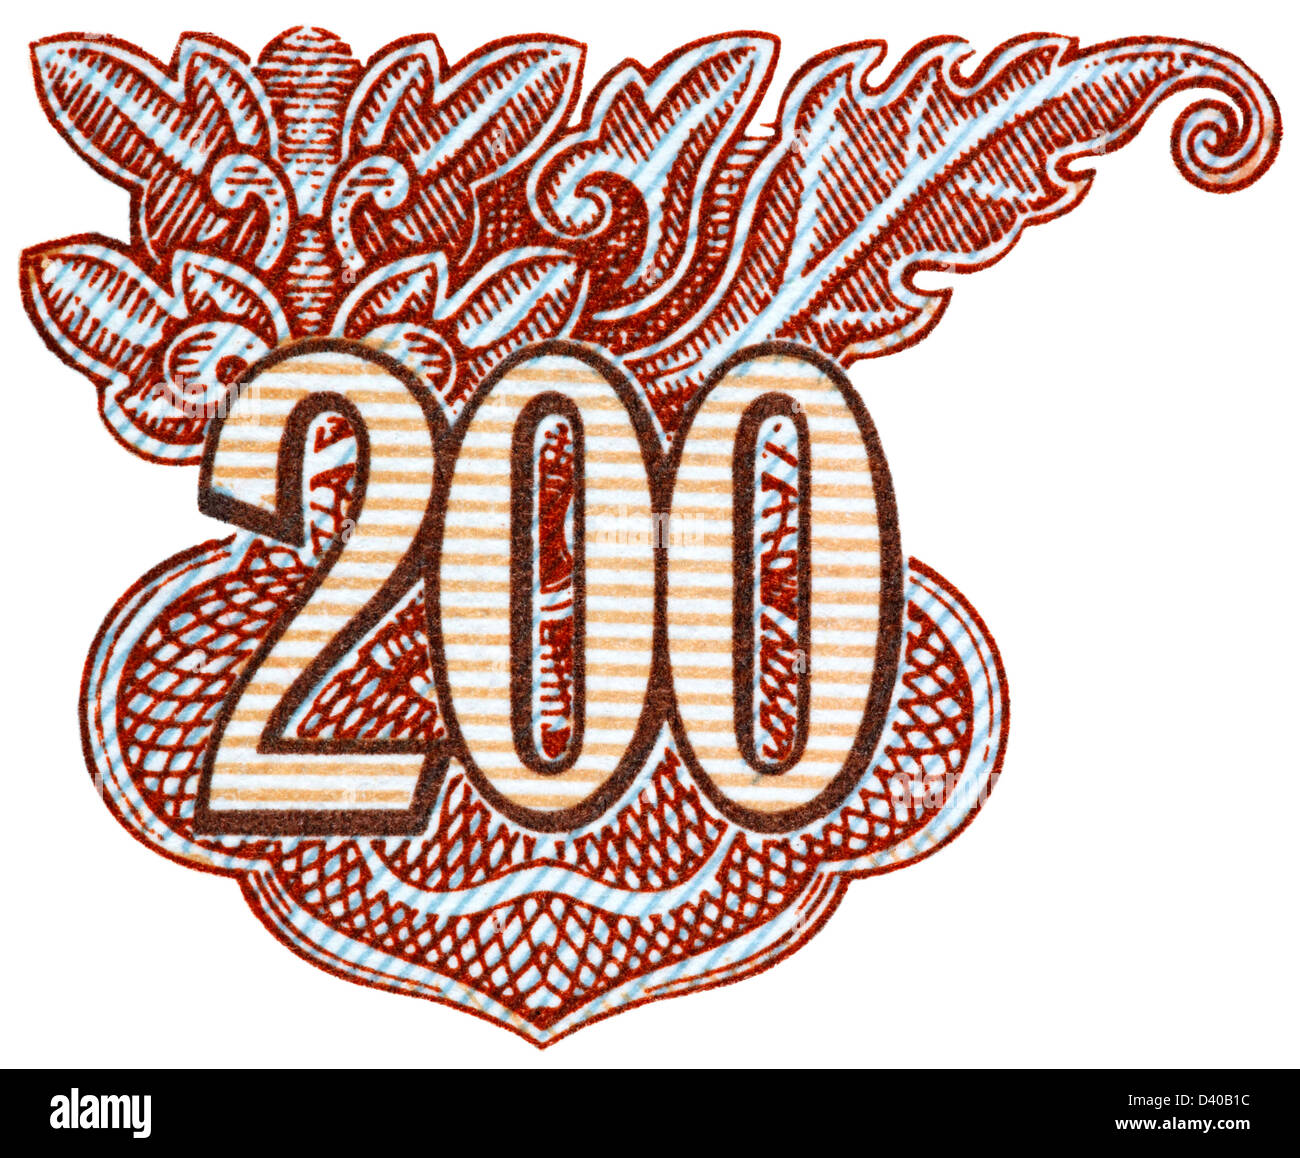 Number 200 from 200 Dong banknote, Vietnam, 1987, on white background - Stock Image